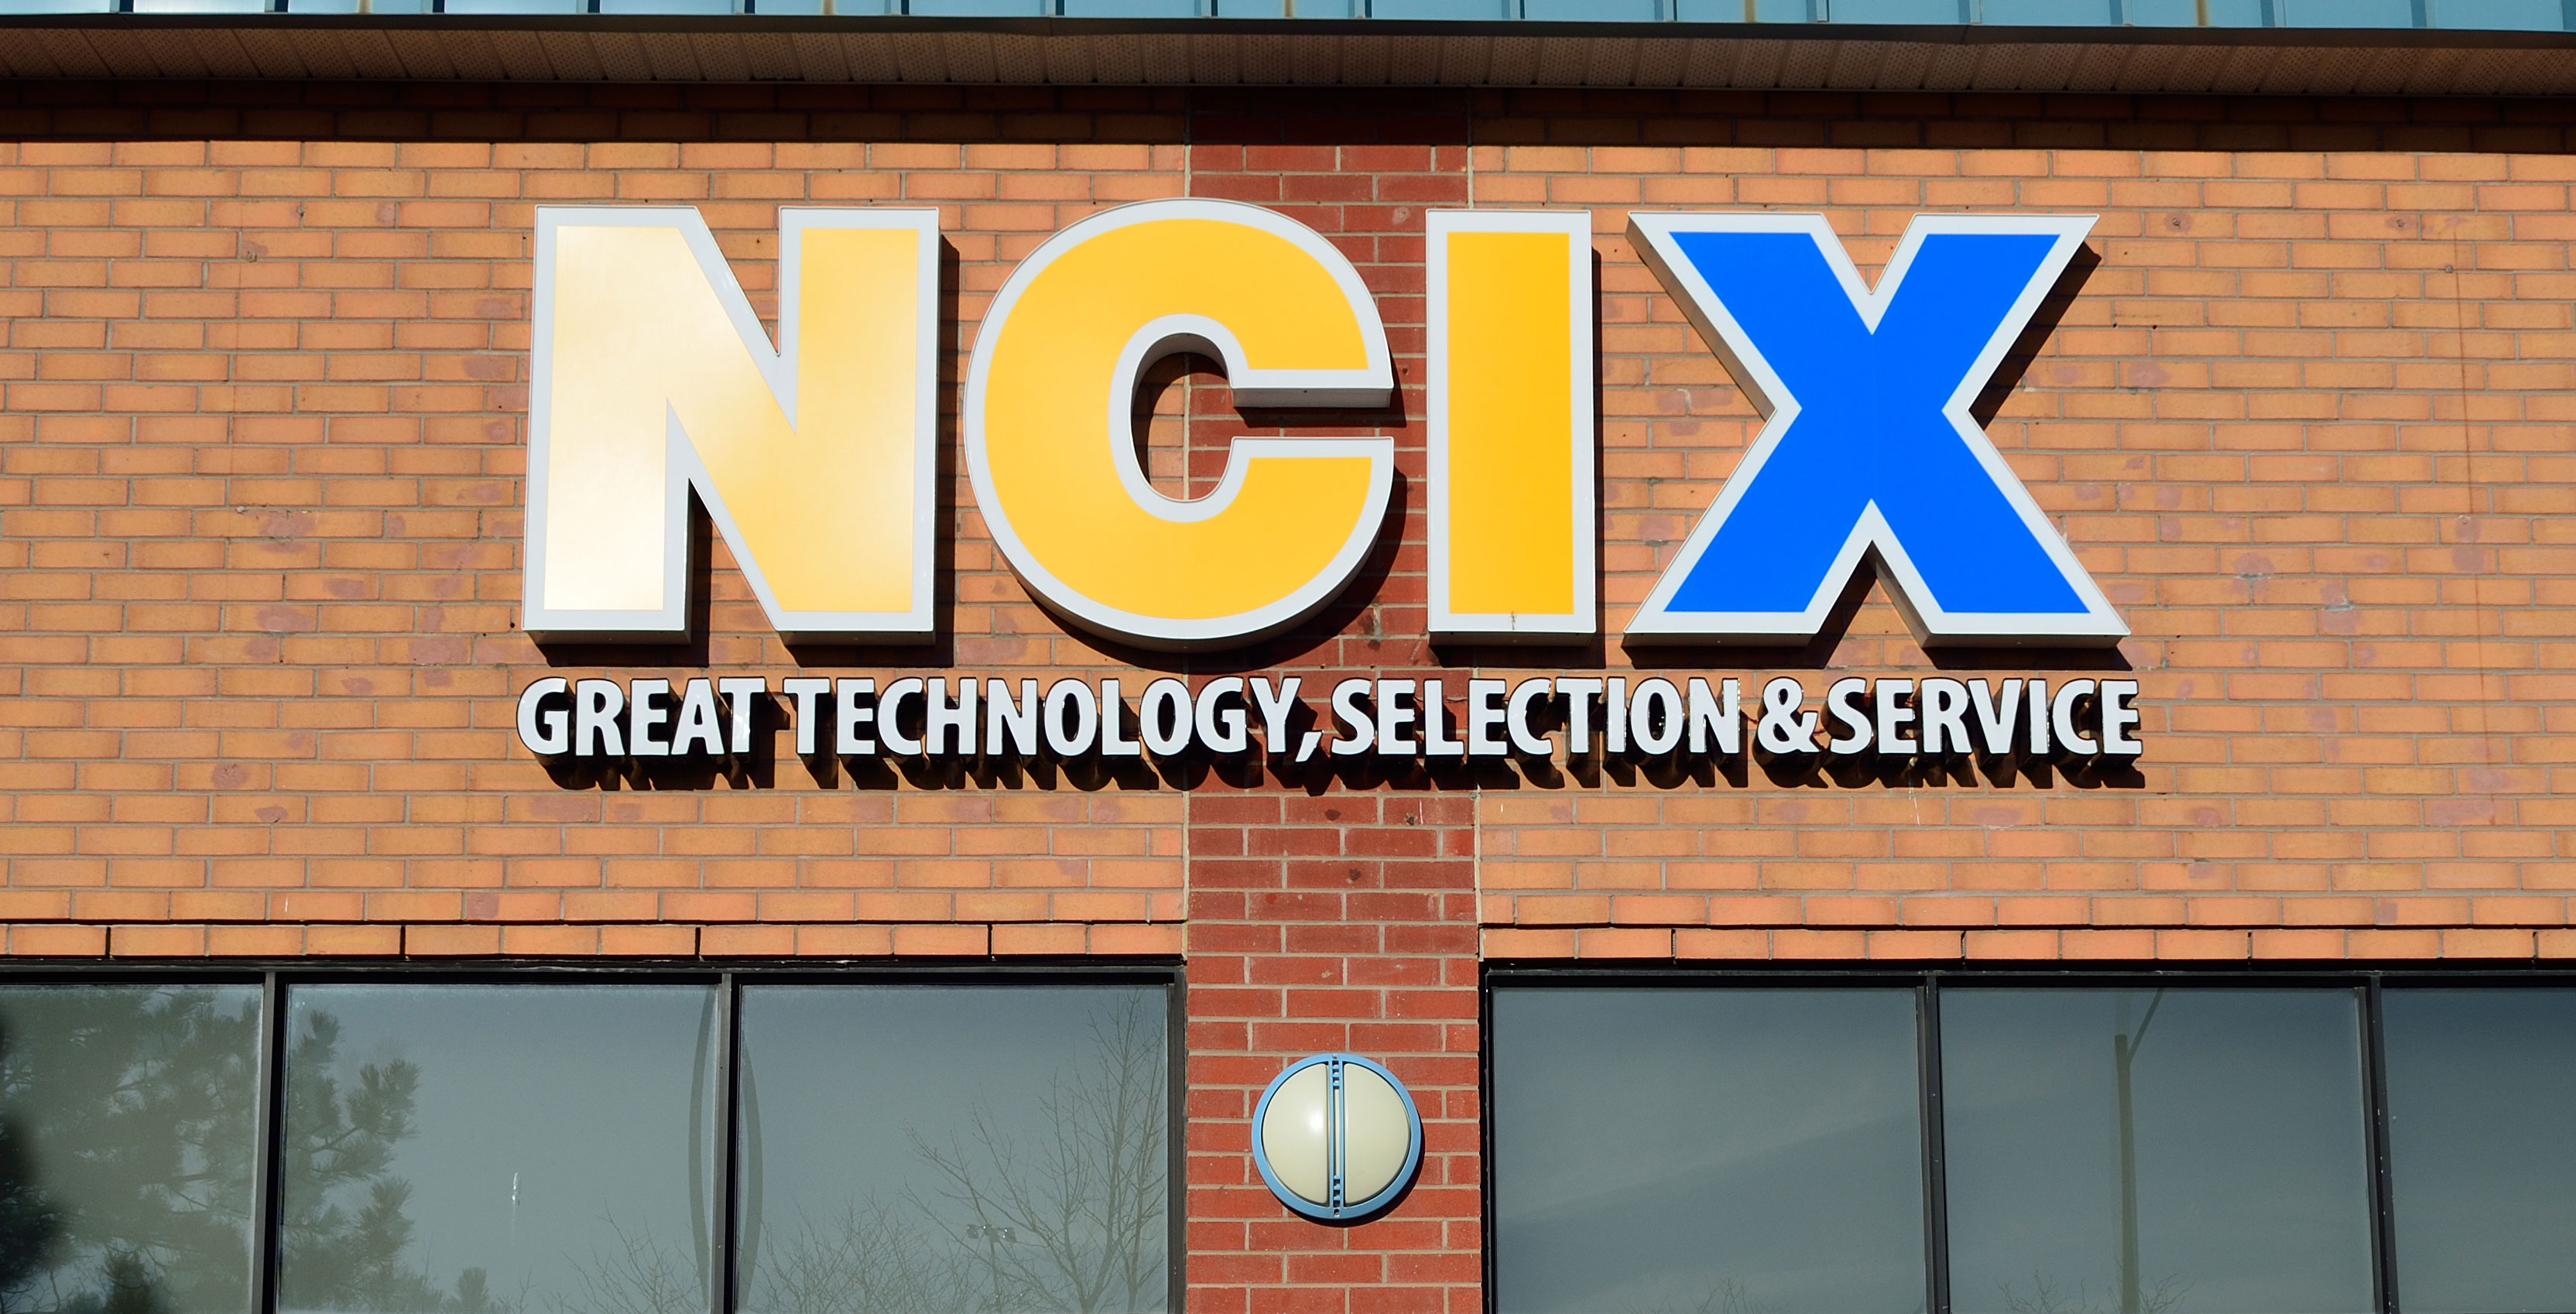 NCIX customer, employee data was for sale on Craigslist: report